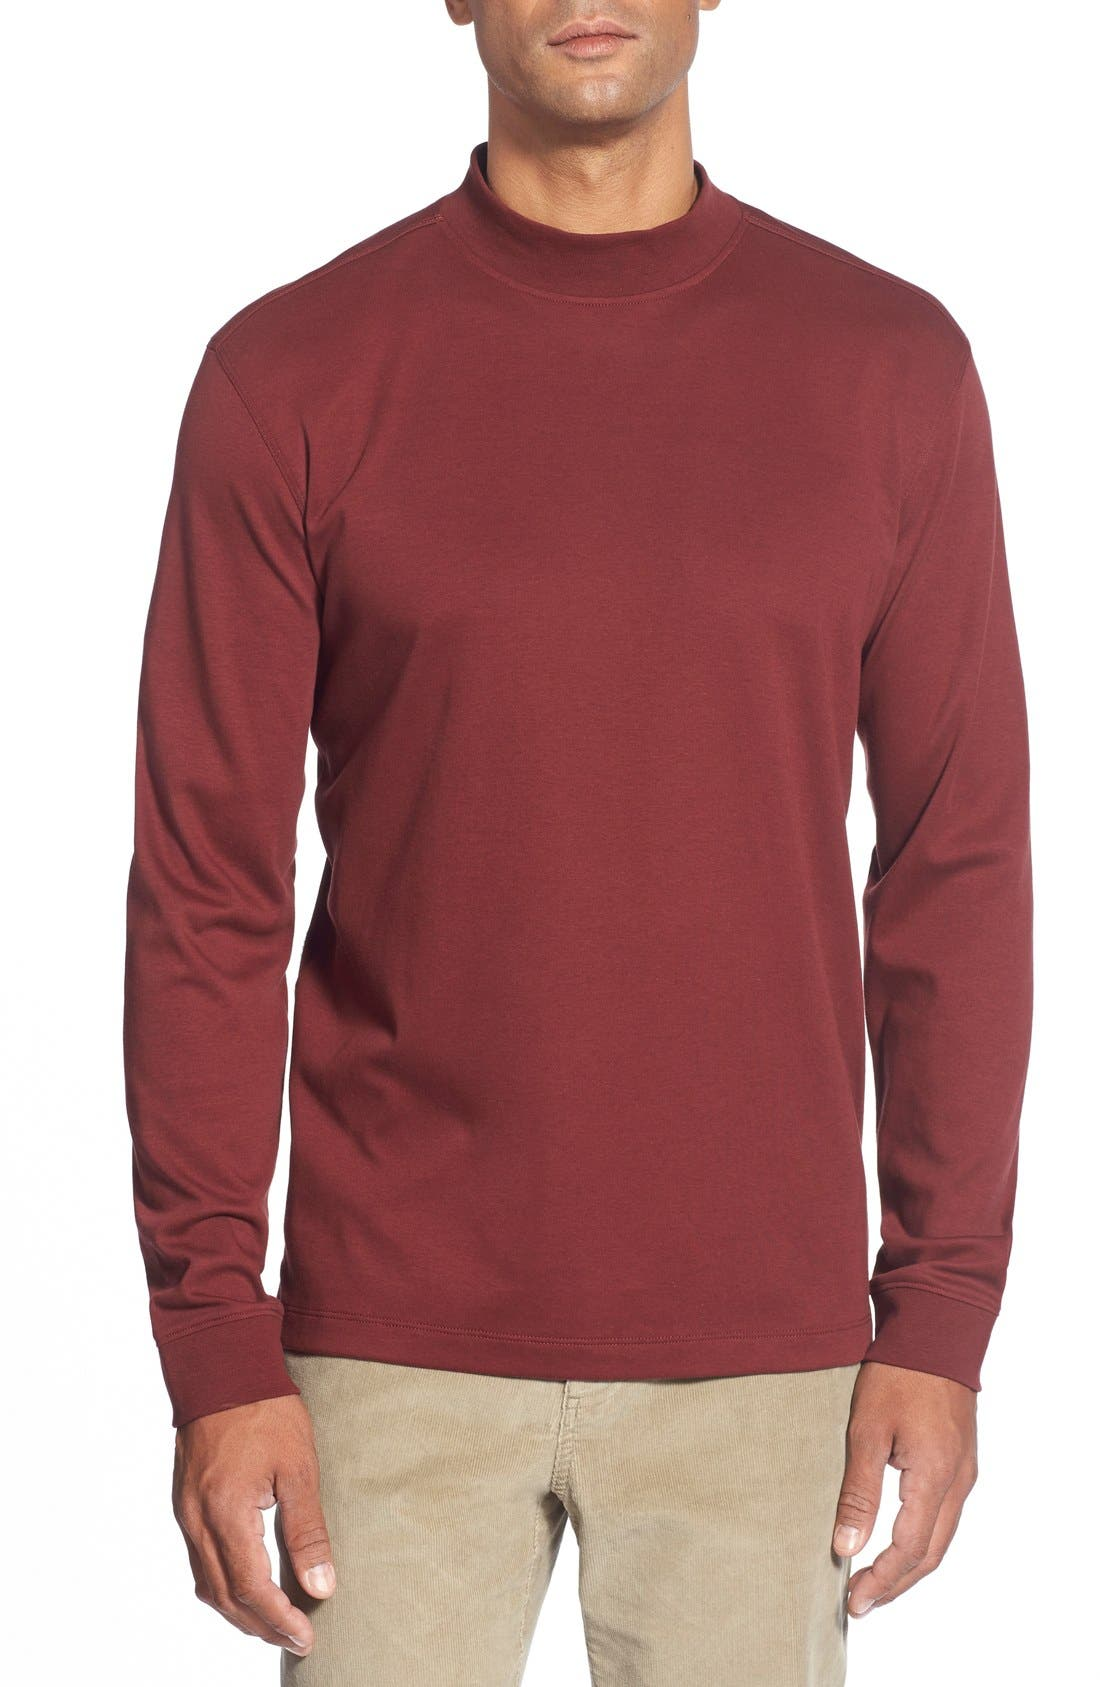 Alternate Image 1 Selected - Cutter & Buck 'Belfair' Long Sleeve Mock Neck Pima Cotton T-Shirt